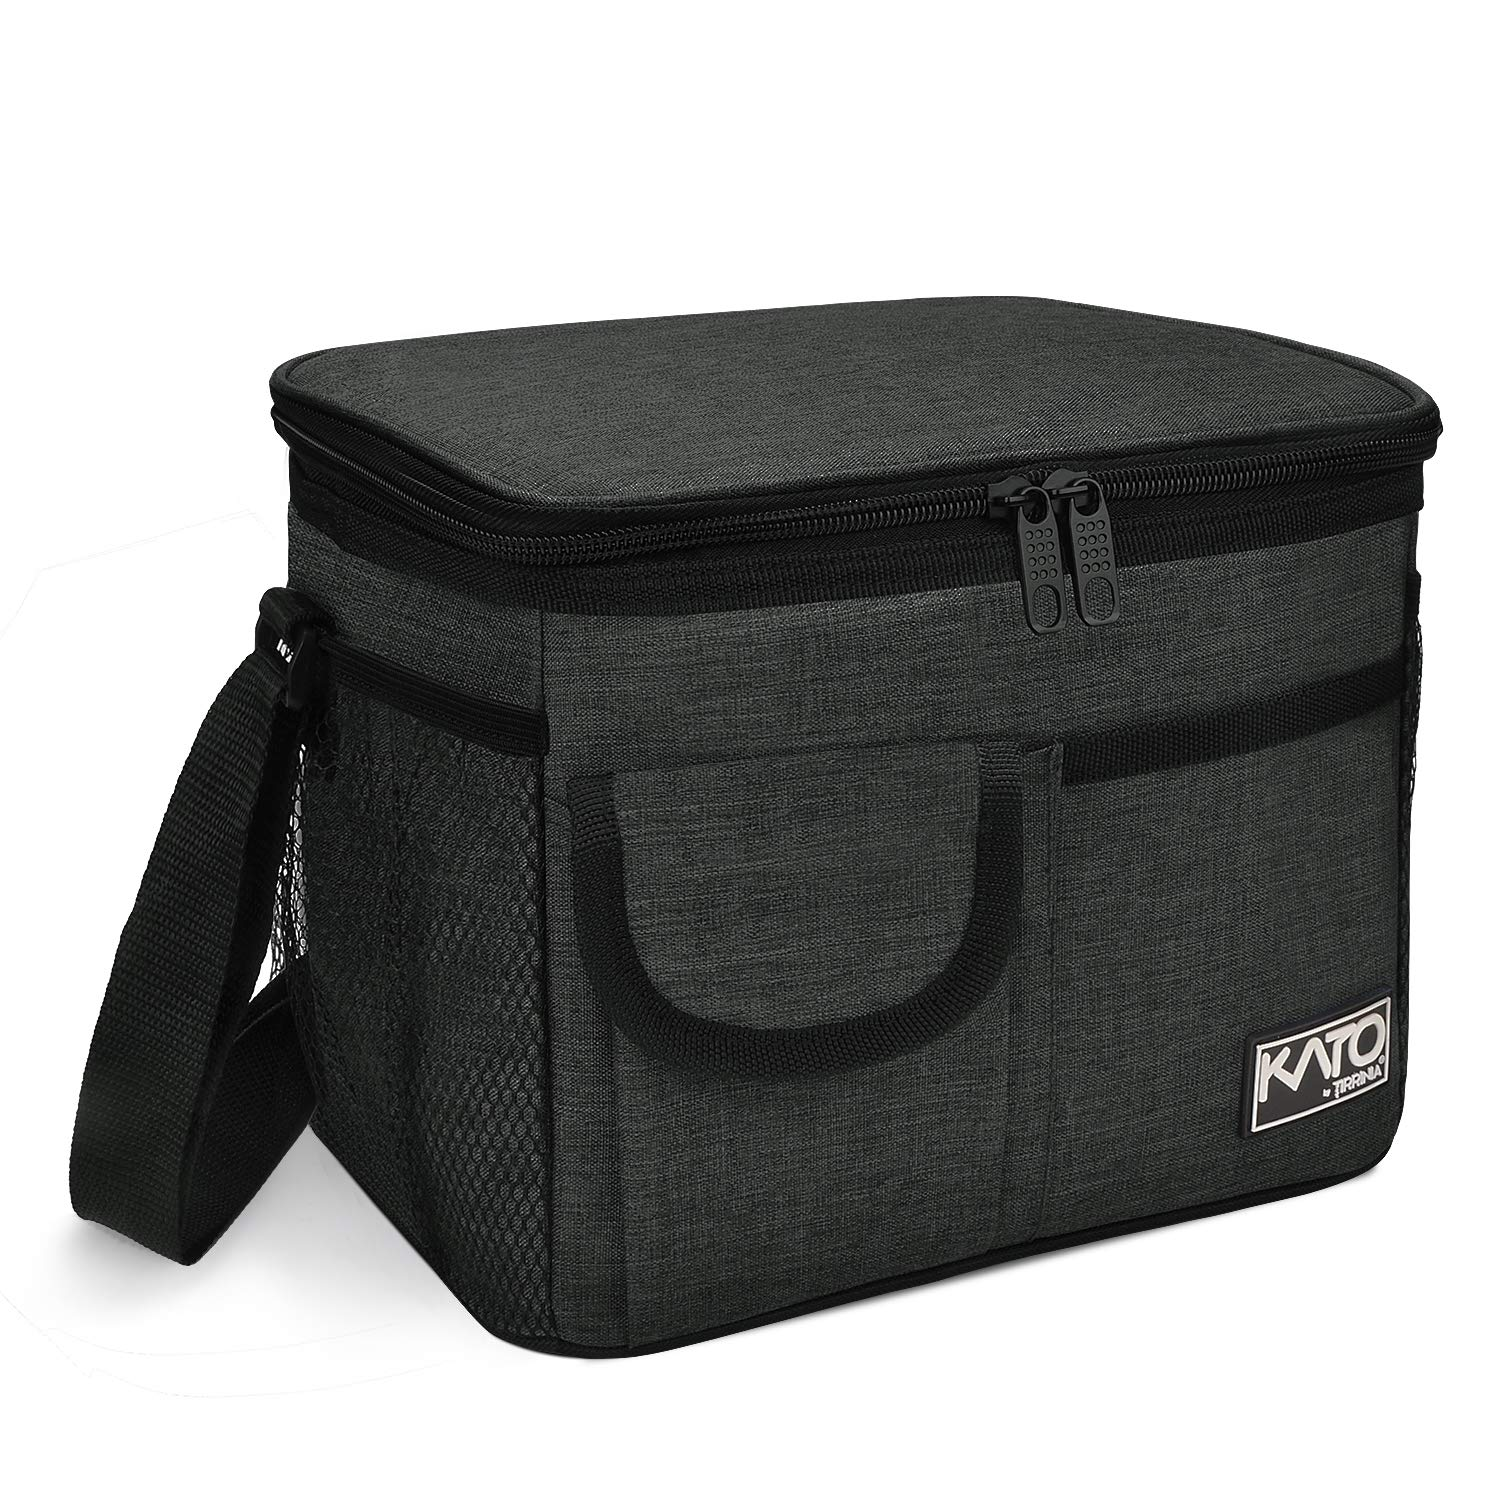 Insulated Lunch Box for Women Men, Leakproof Thermal Reusable Lunch Bag with 4 Pockets for Adult & Kids, Lunch Bag Cooler Tote for Office Work by Tirrinia, Black by Tirrinia